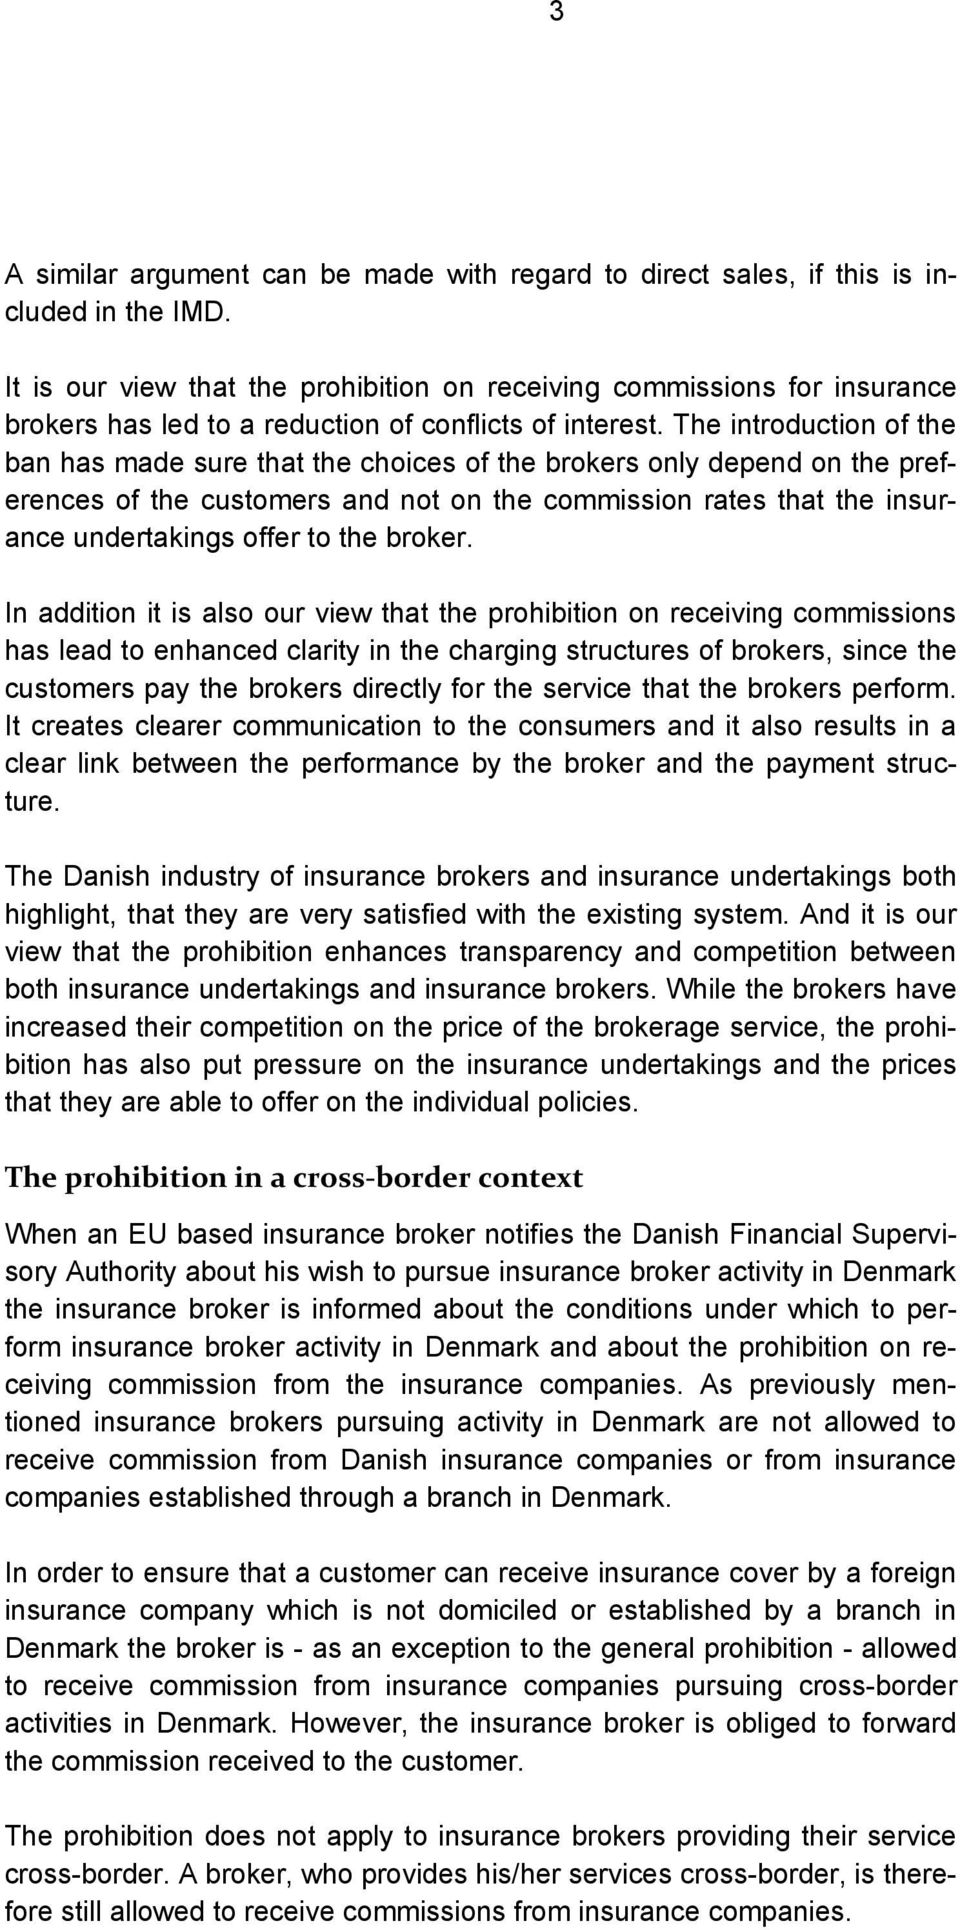 The introduction of the ban has made sure that the choices of the brokers only depend on the preferences of the customers and not on the commission rates that the insurance undertakings offer to the